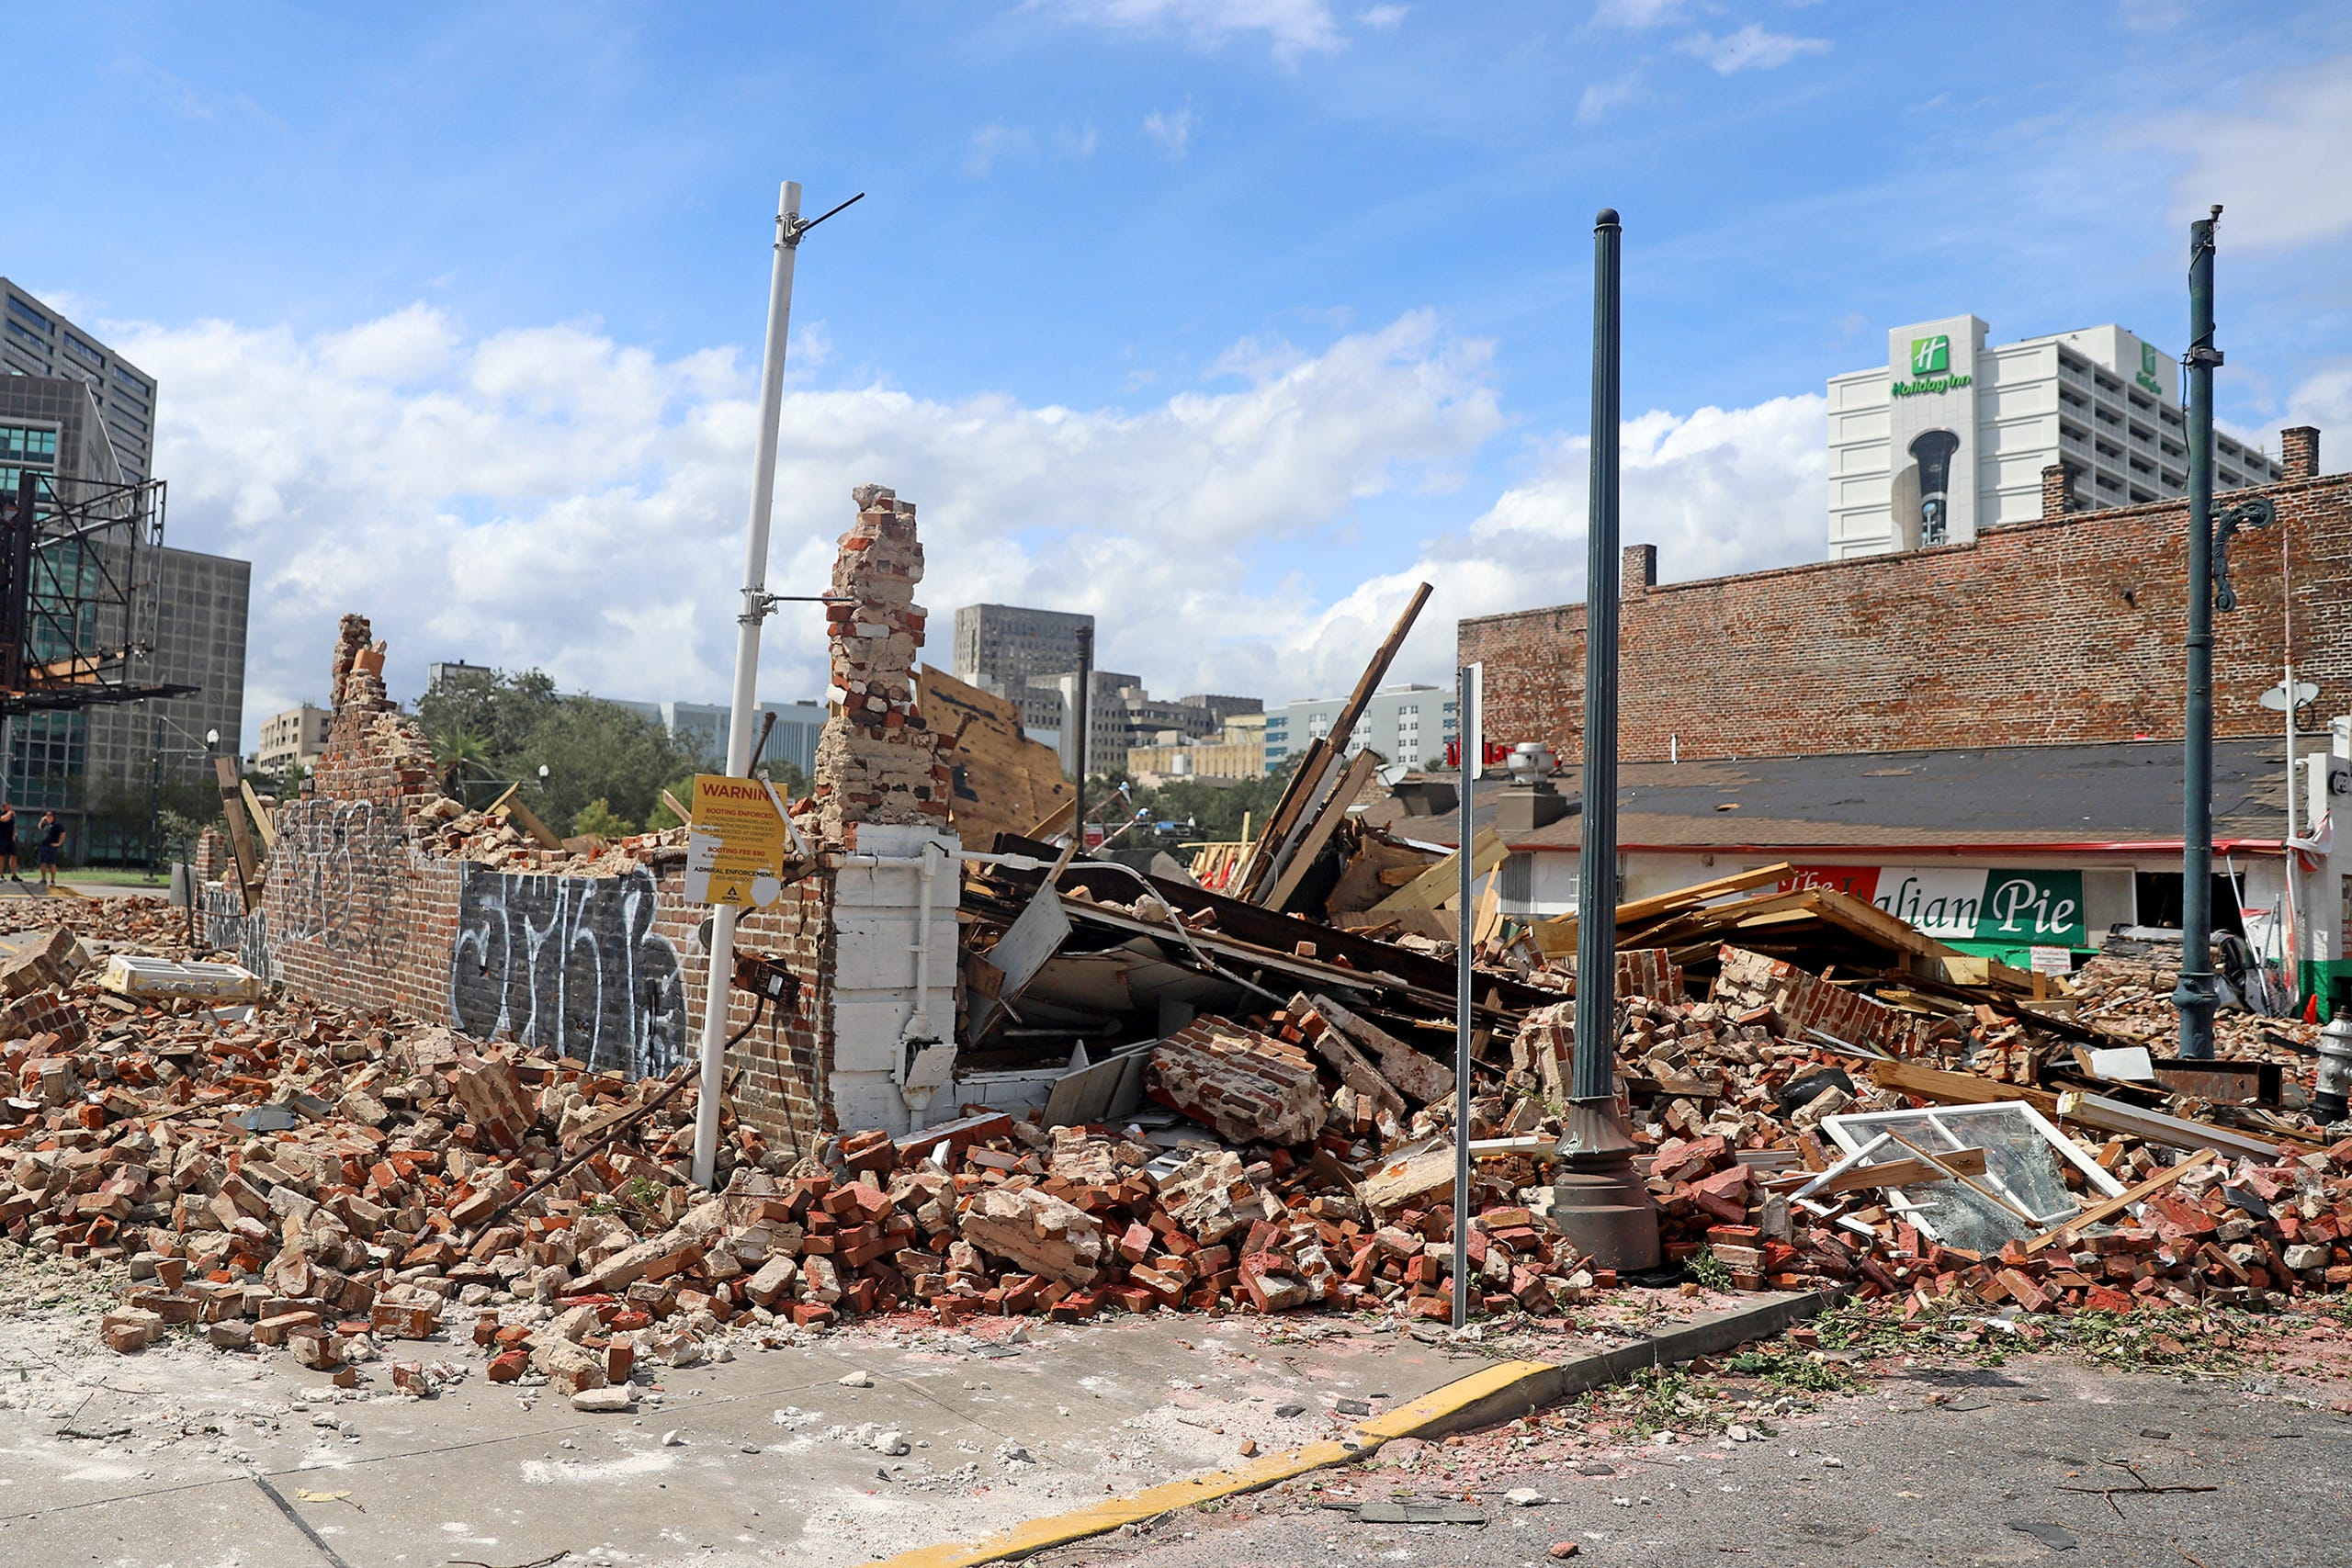 The historic Karnofsky Store on South Rampart Street in New Orleans, a second home to jazz musician Louis Armstrong, was destroyed by Hurricane Ida. Photographed on Monday, August 30, 2021.